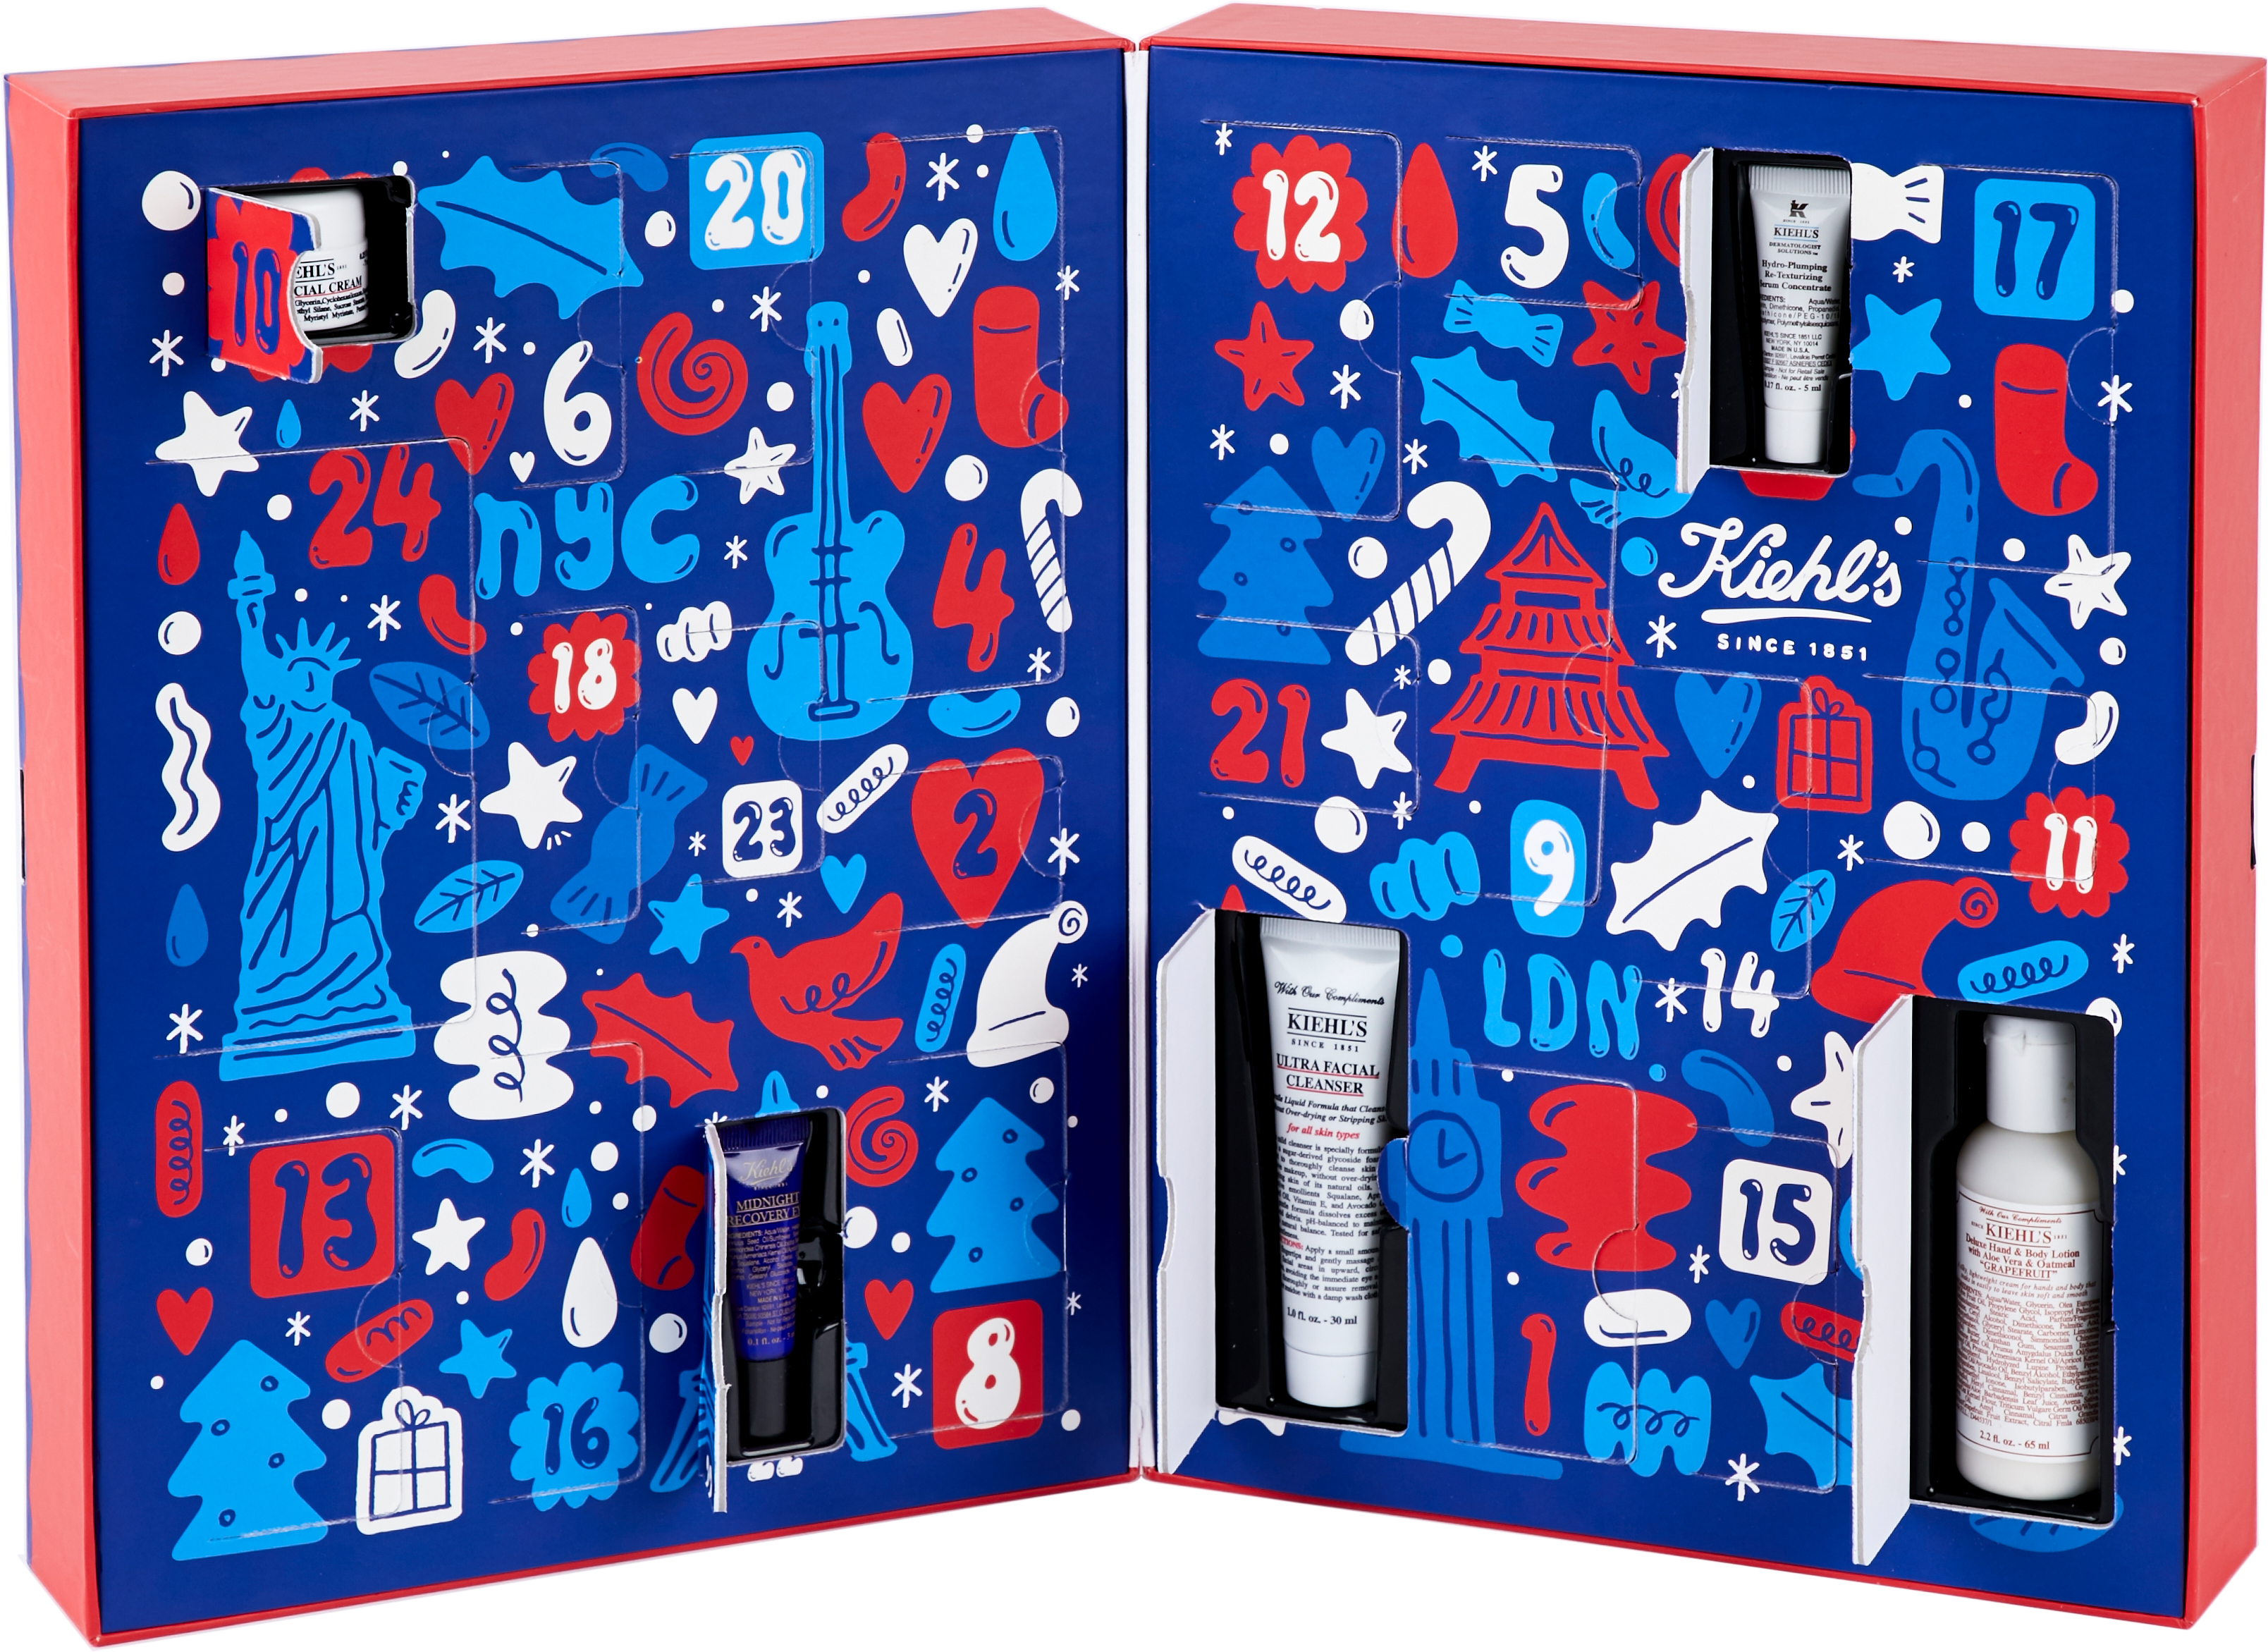 Kiehls-advent-2017-theldndiaries